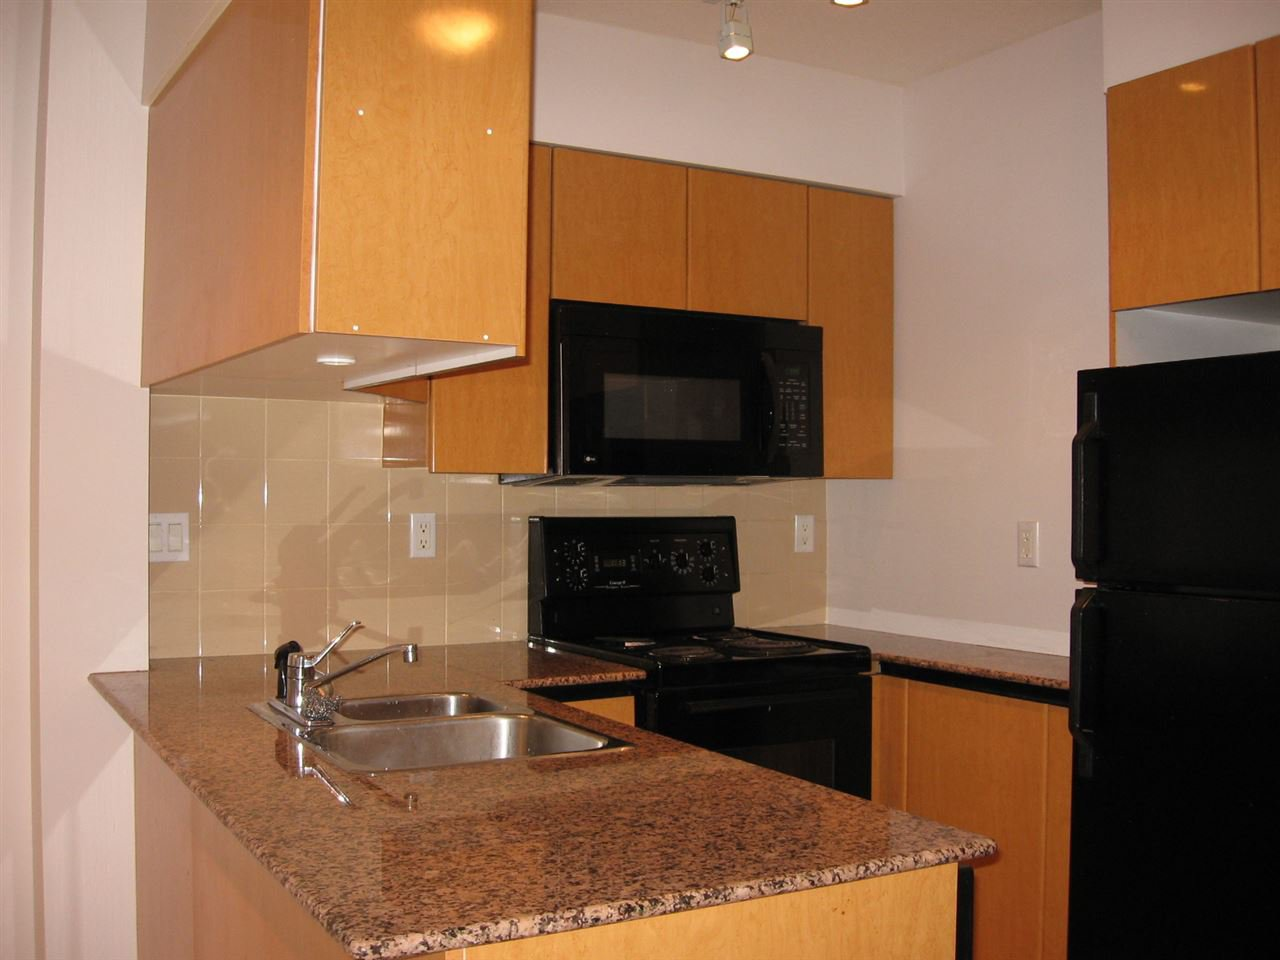 Photo 10: Photos: 801-1189 Howe Street in Vancouver: Yaletown Condo for rent (Downtown Vancouver)